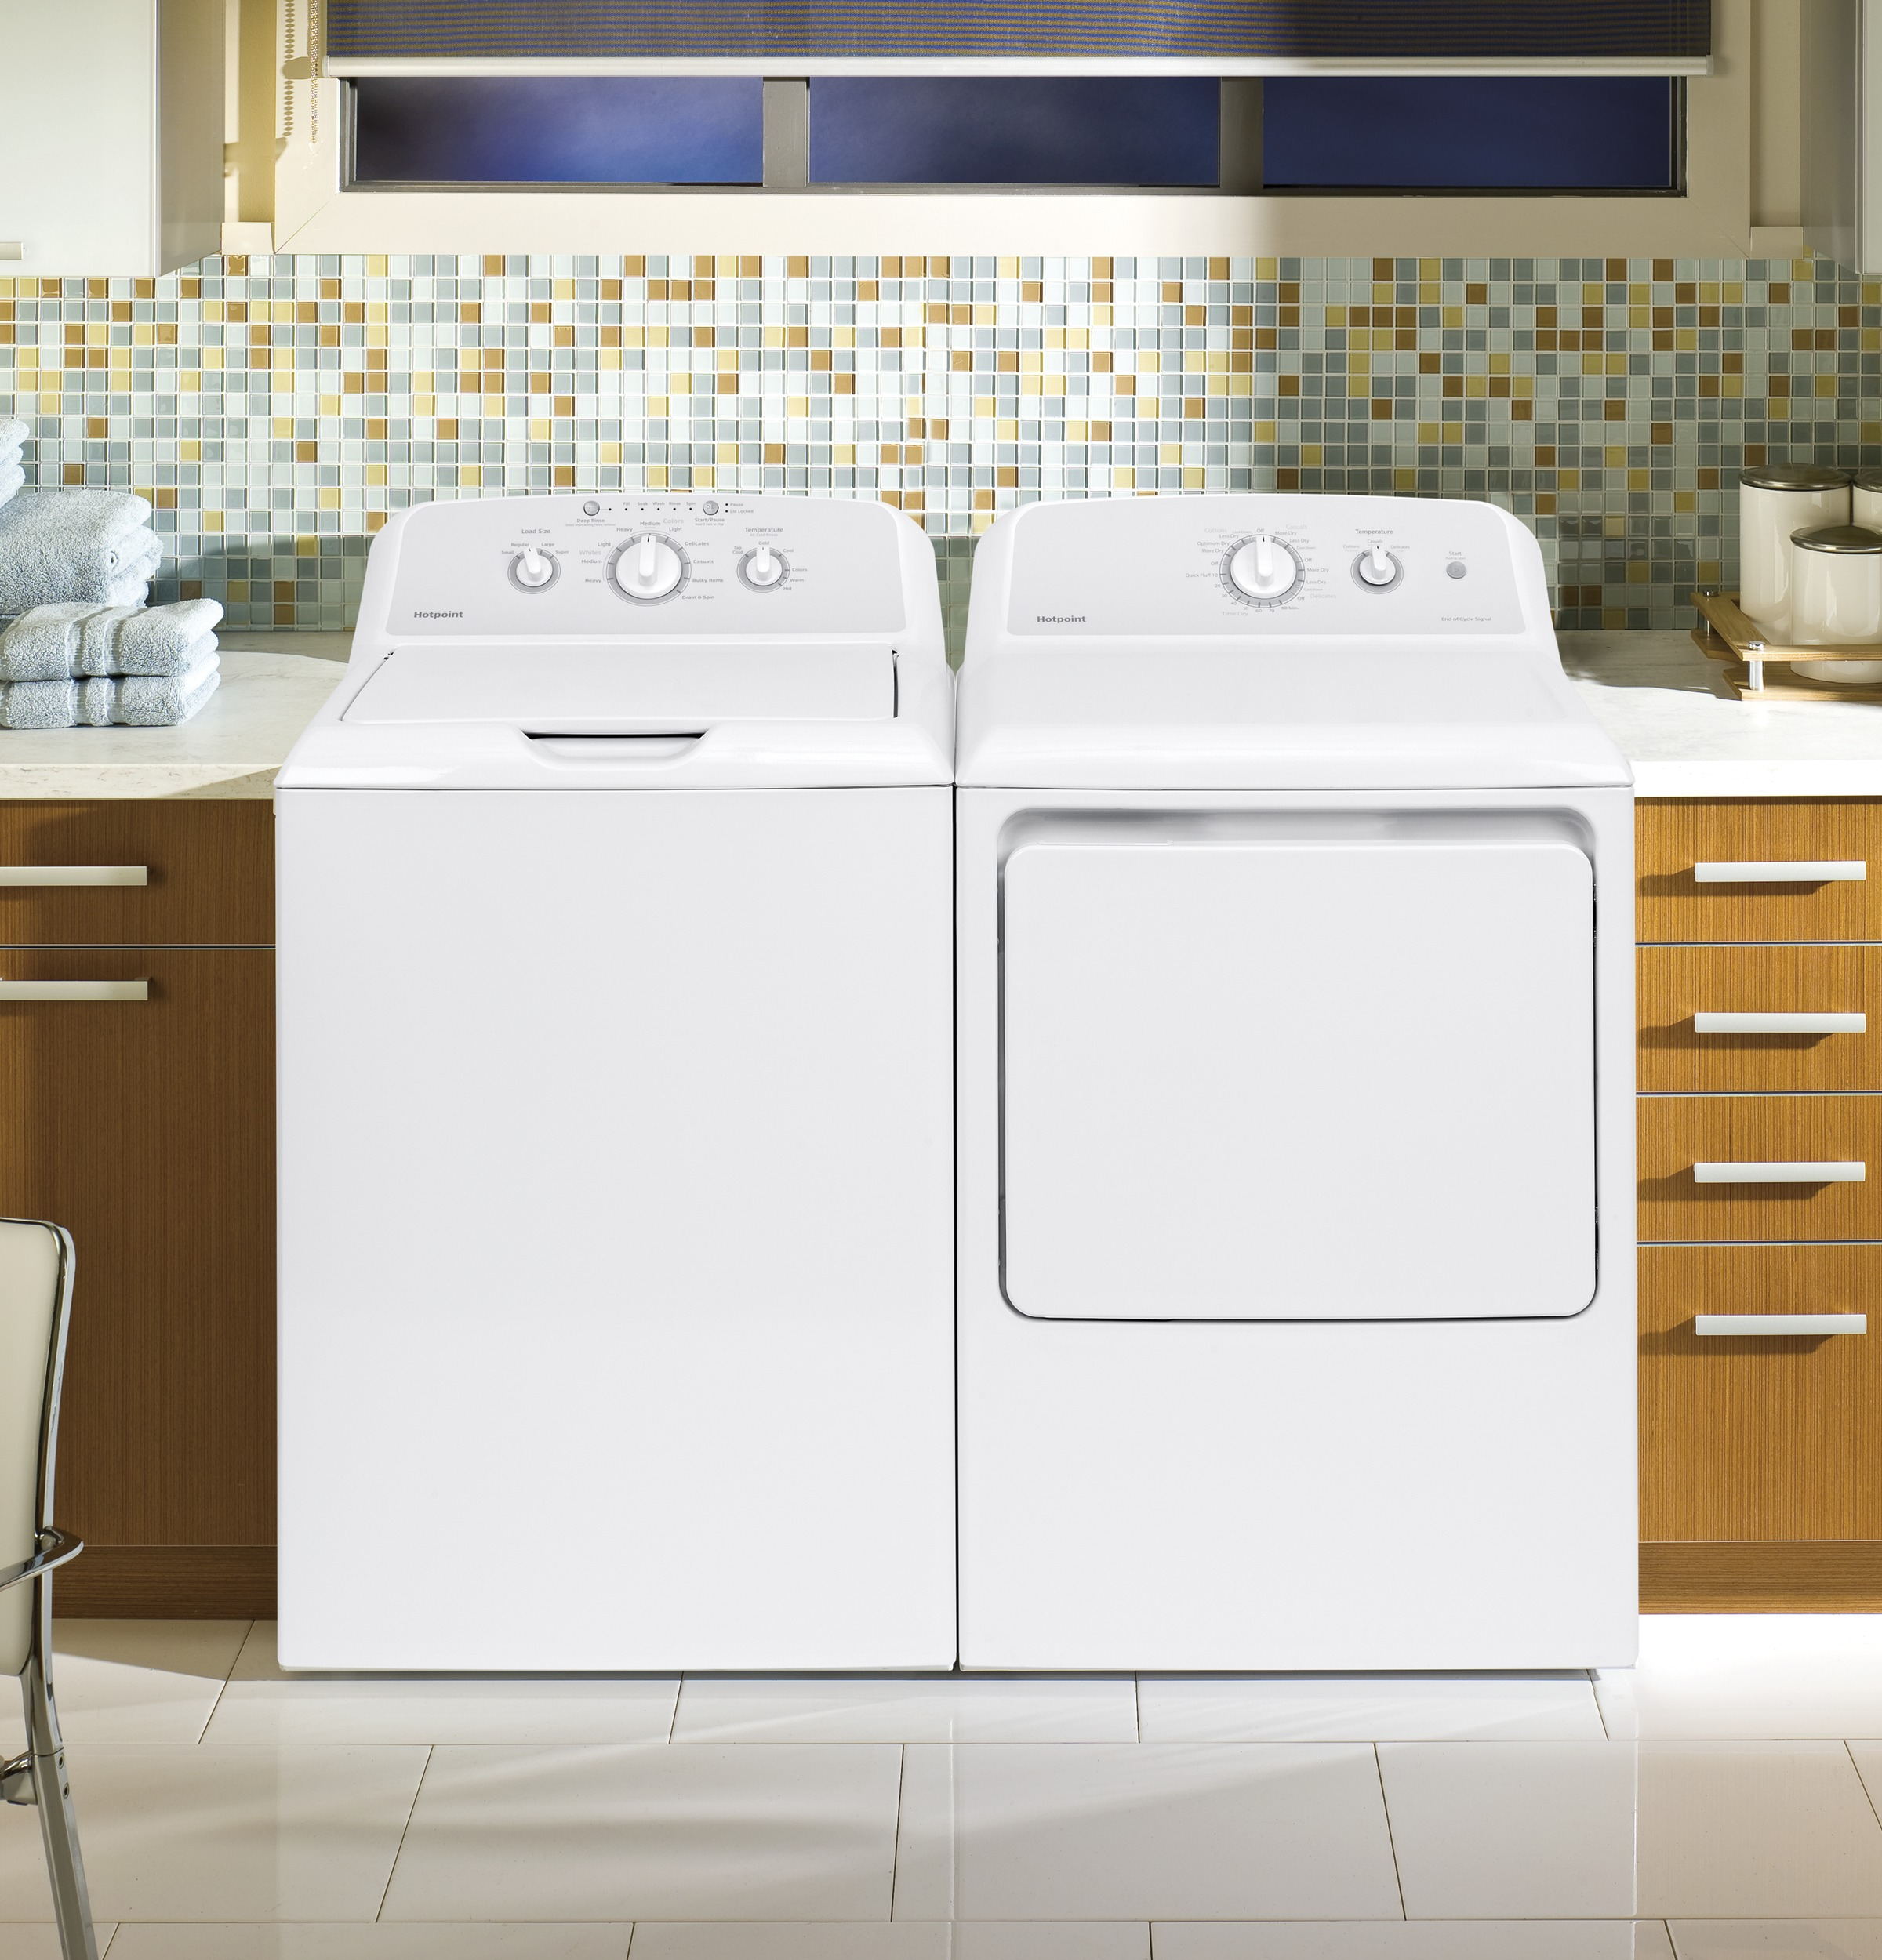 Model: HTW240ASKWS | Hotpoint® 3.8 cu. ft. Capacity Washer with Stainless Steel Basket